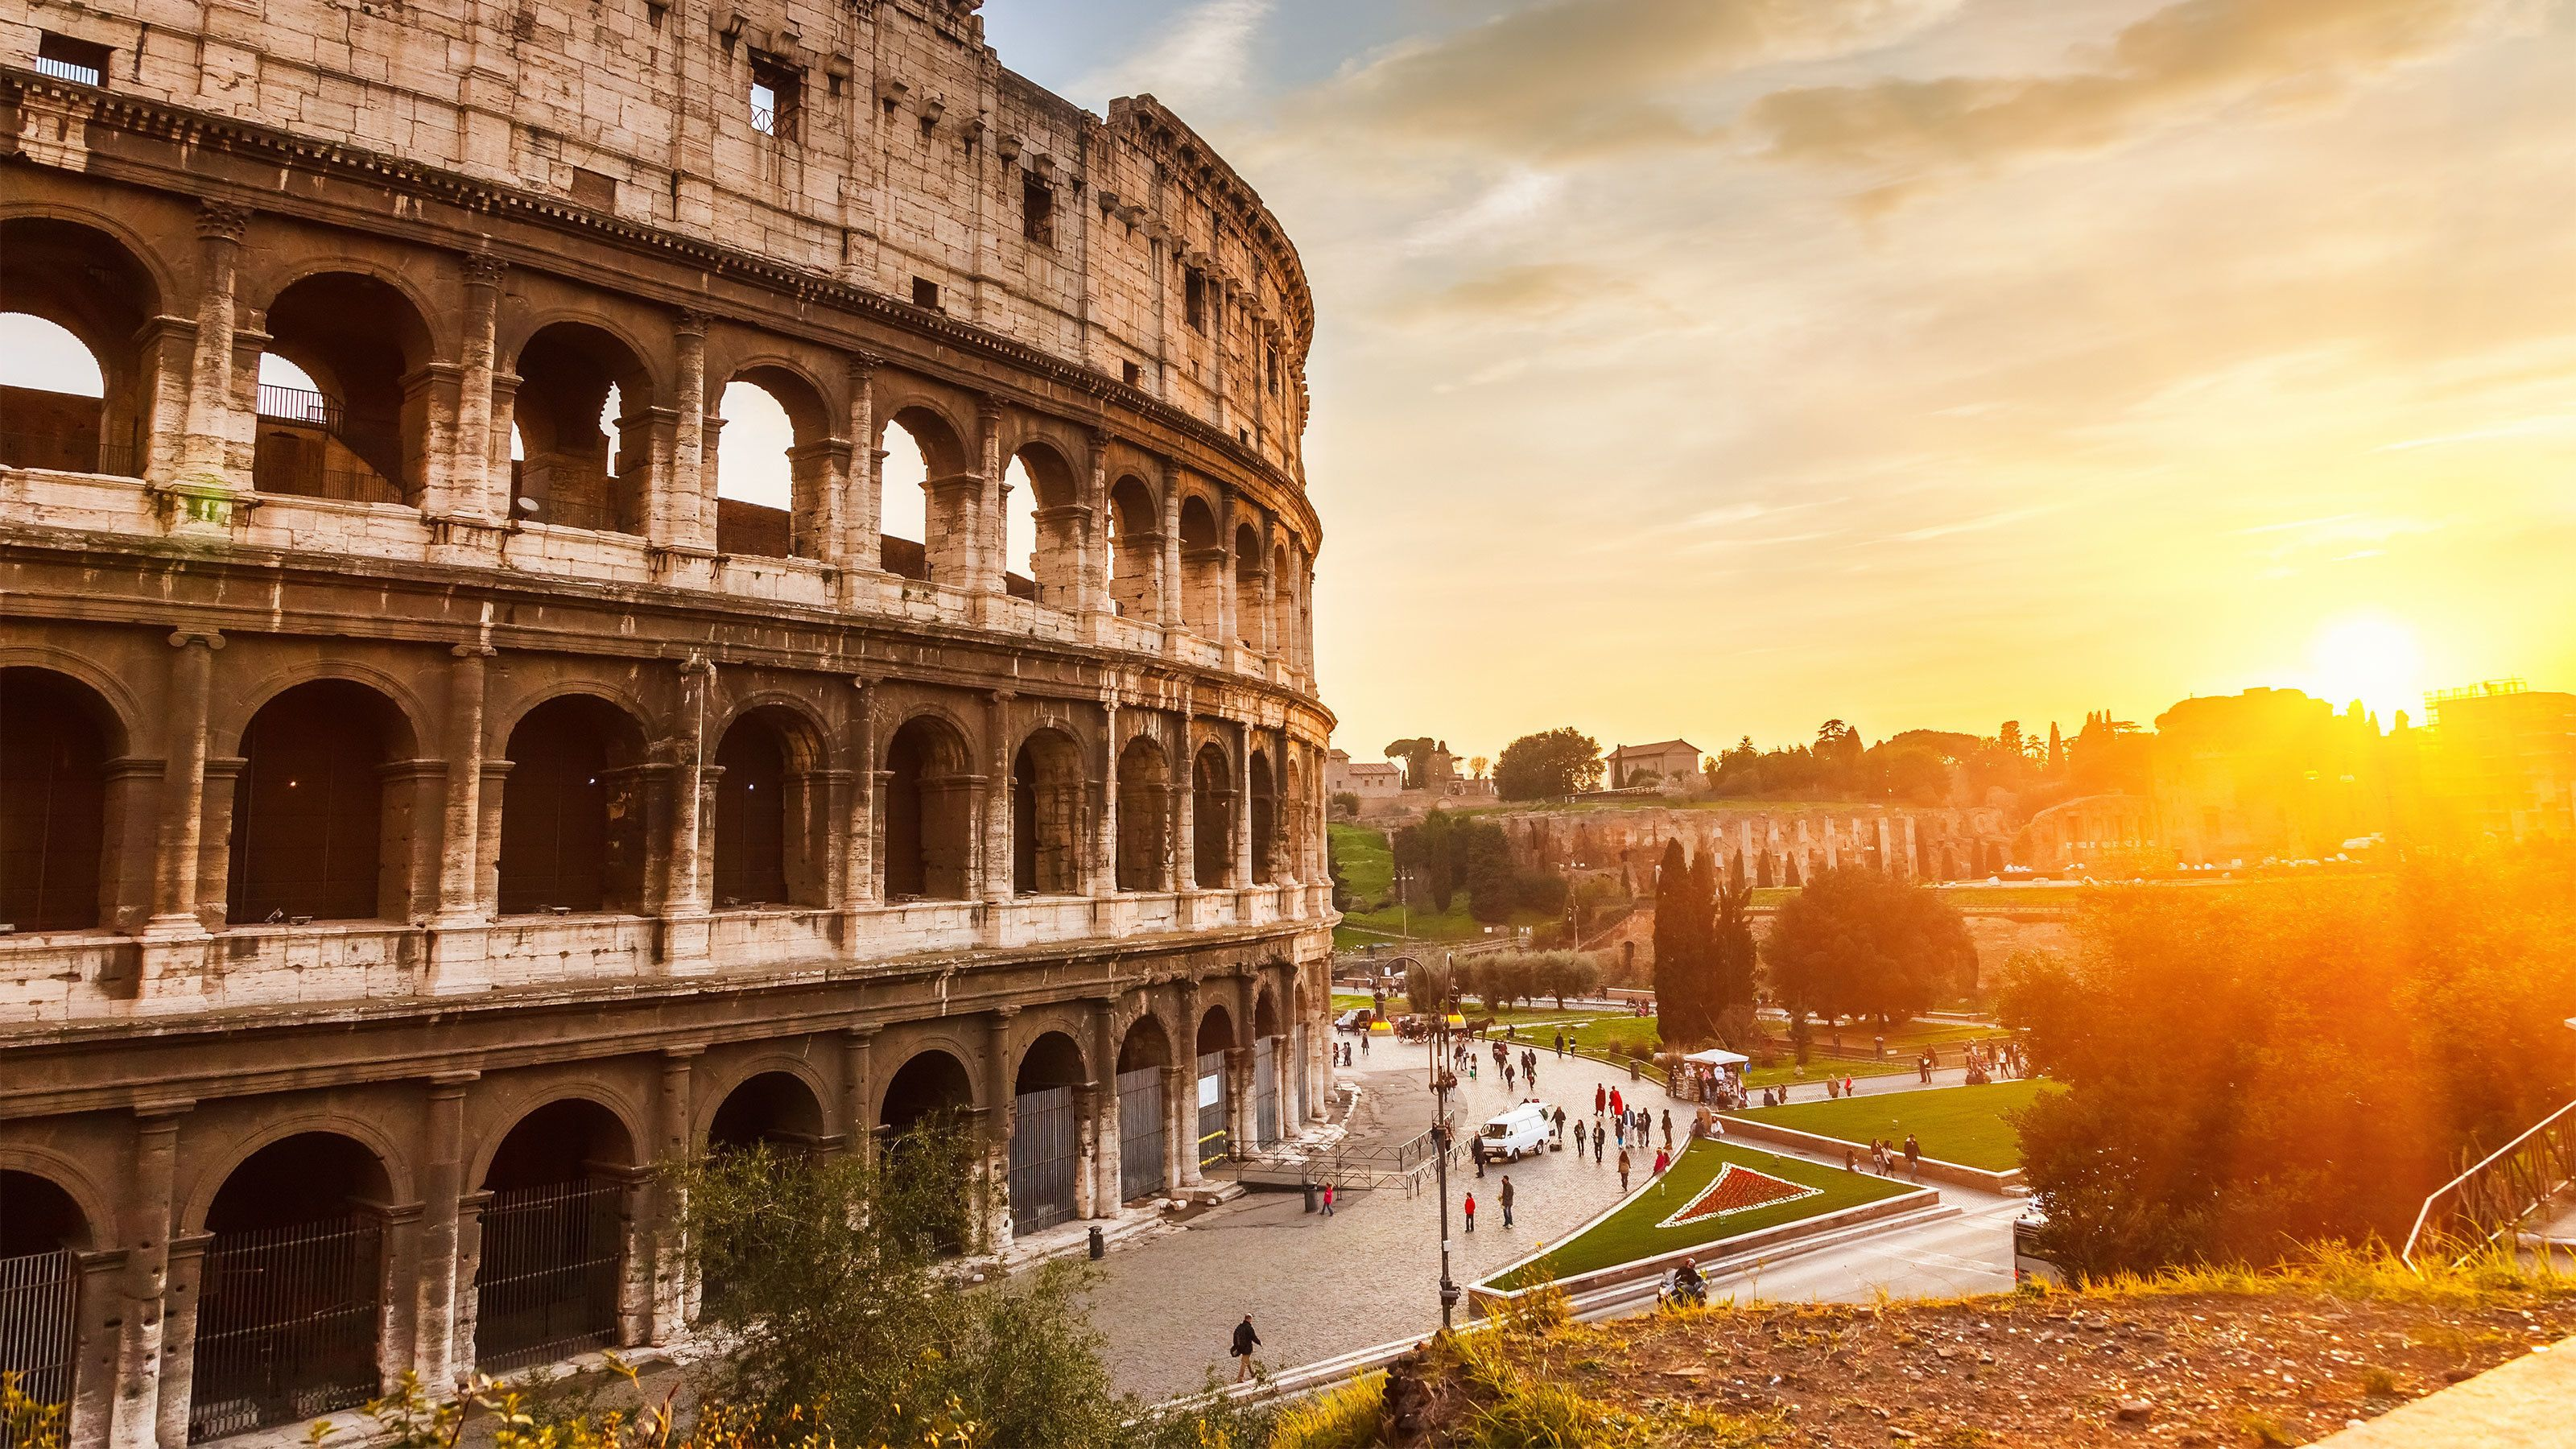 The Colosseum at sunset in Rome